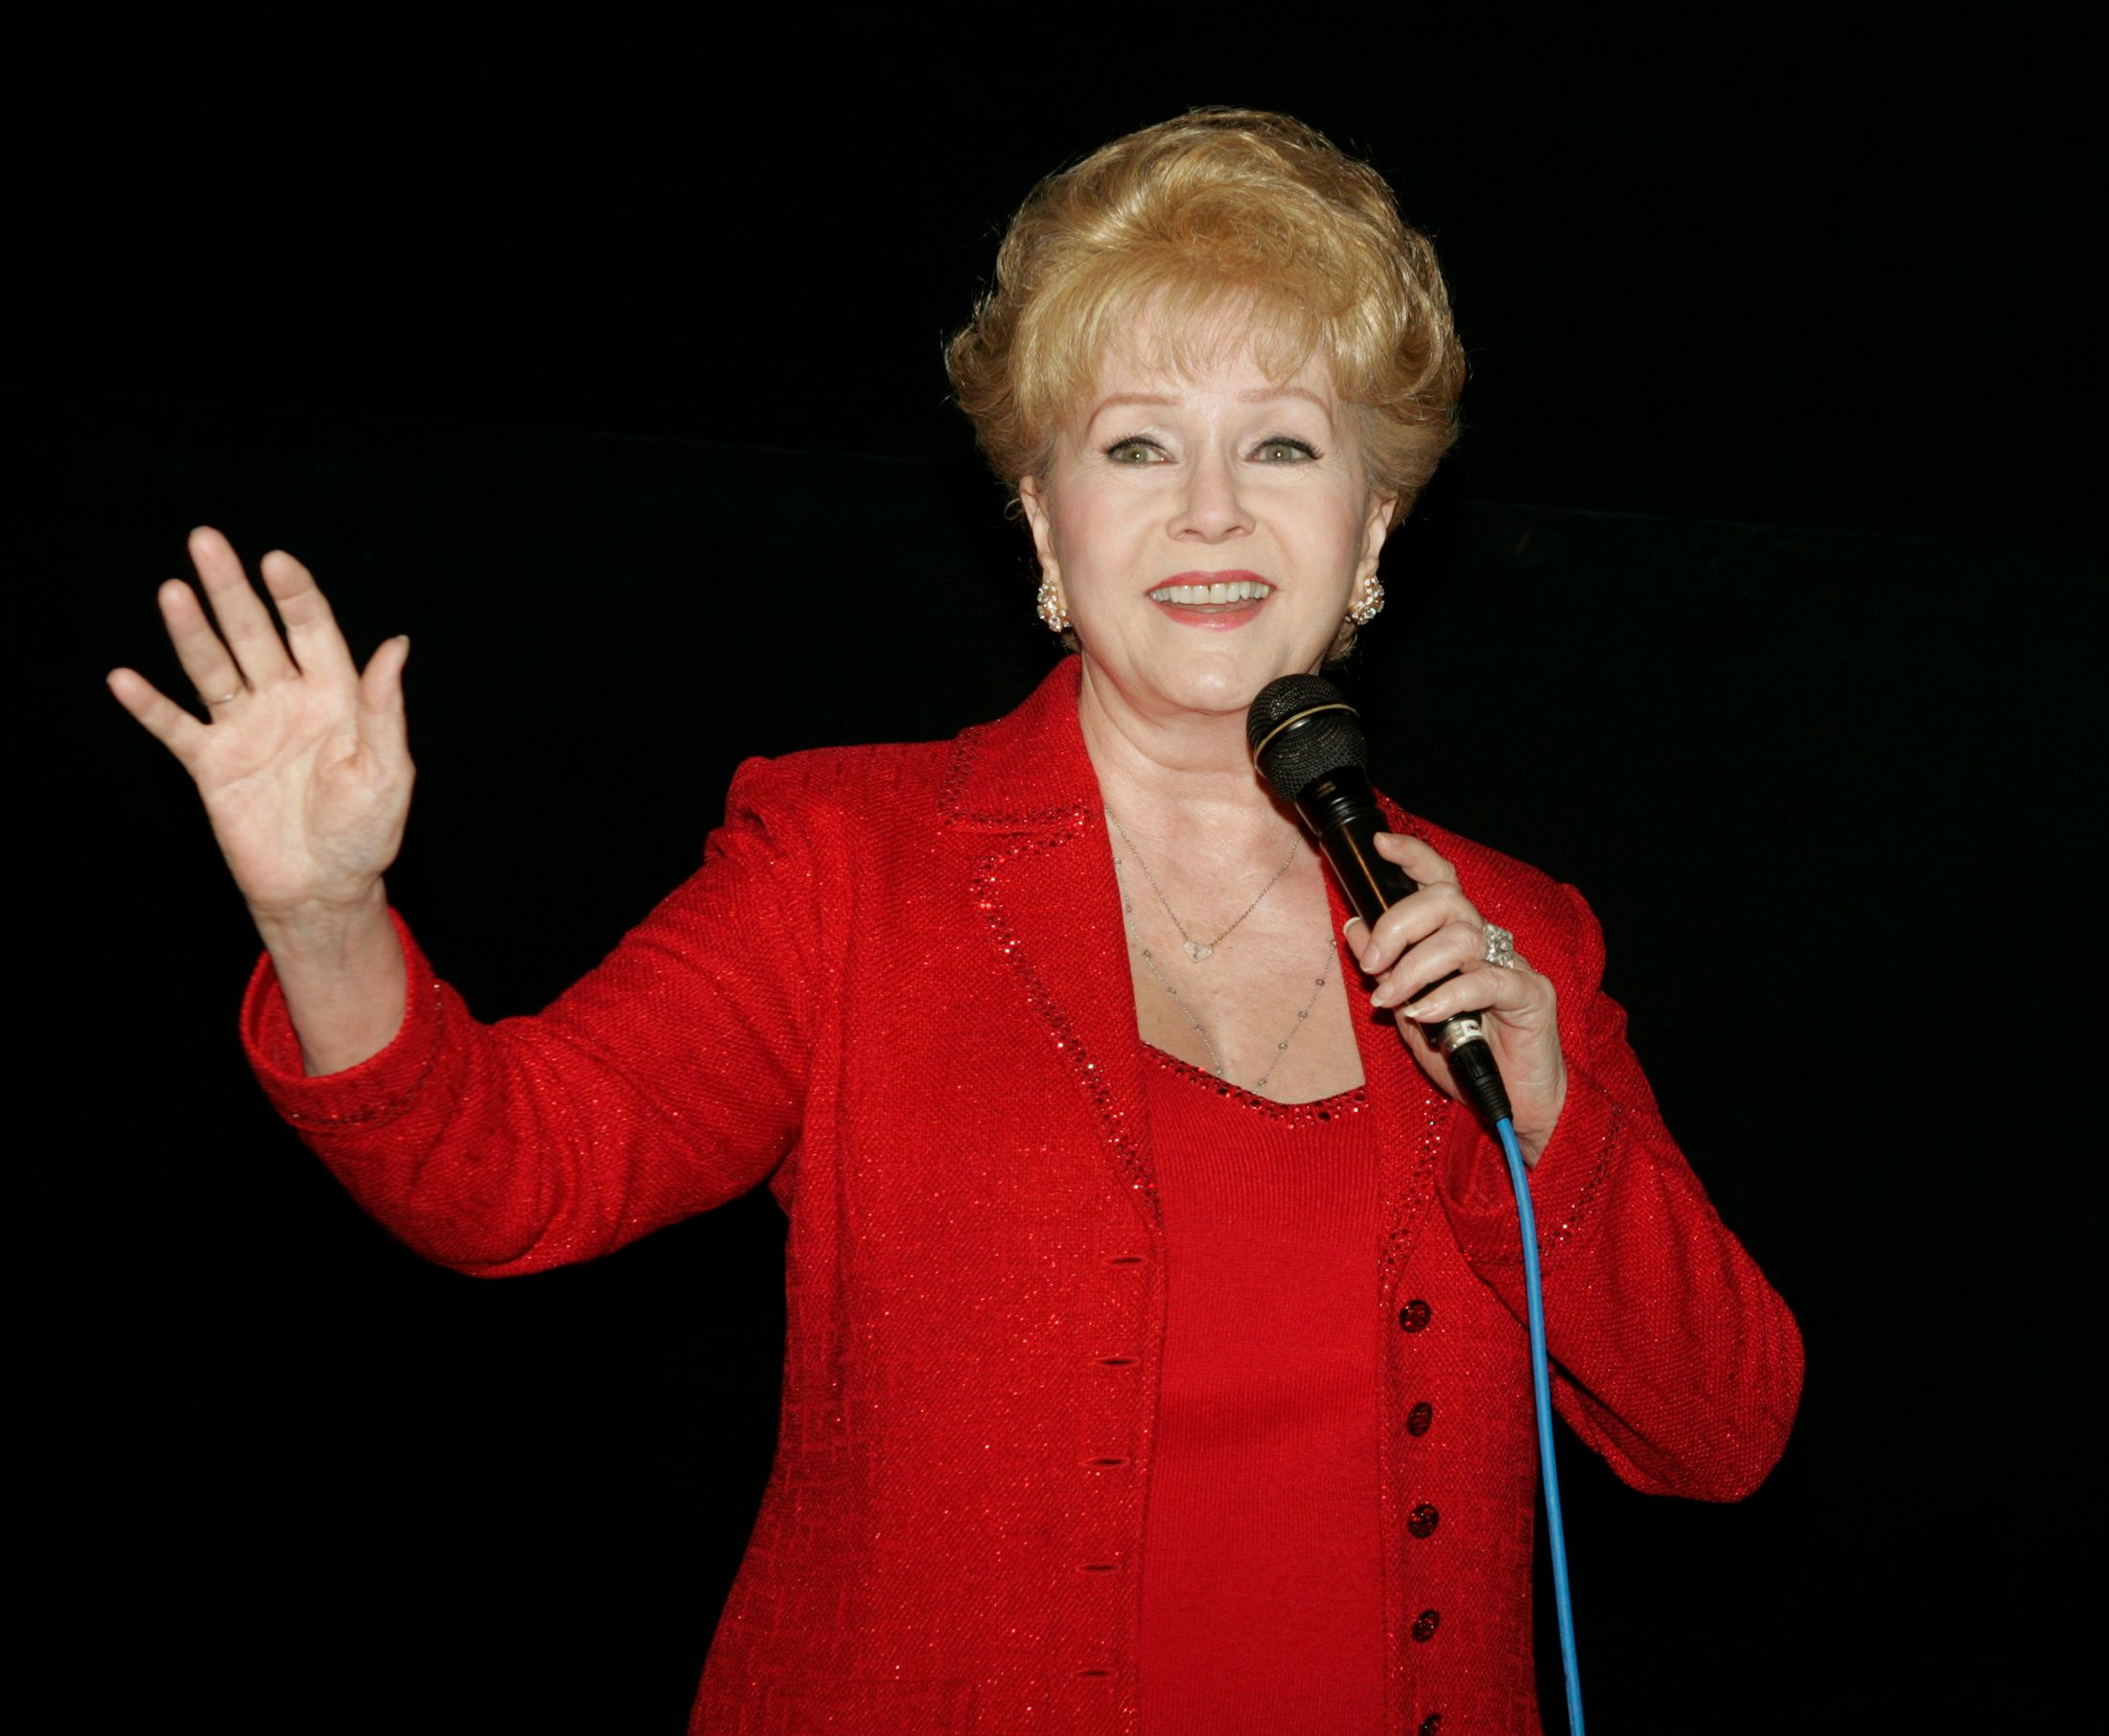 """Actress Debbie Reynolds speaks at the """"Hollywood Stars Salute Glenn Ford's 90th Birthday"""" held on the actor's 90th birthday May 1, 2006, during a salute and screening of Ford's 1946 film """"Gilda"""" by the American Cinematheque at Grauman's Egyptian Theatre in Hollywood. Reynolds starred with Ford in the 1959 film """"The Gazebo"""". Ford was expected in person, but his doctor advised against him attending. REUTERS/Fred Prouser"""